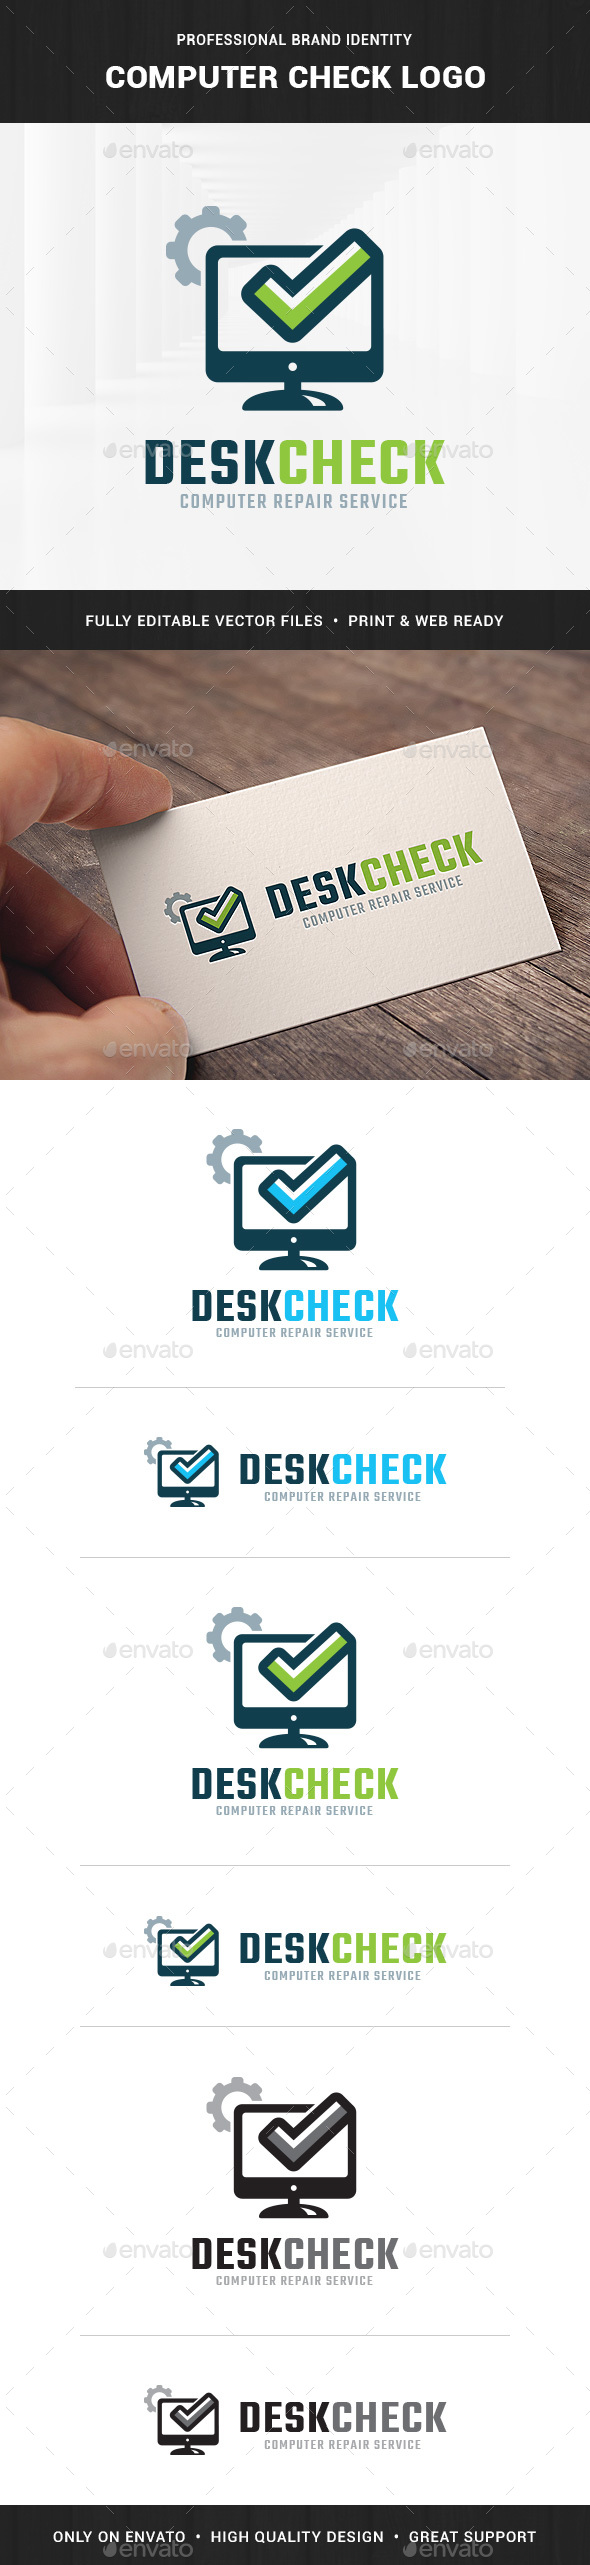 Computer Check Logo Template - Objects Logo Templates